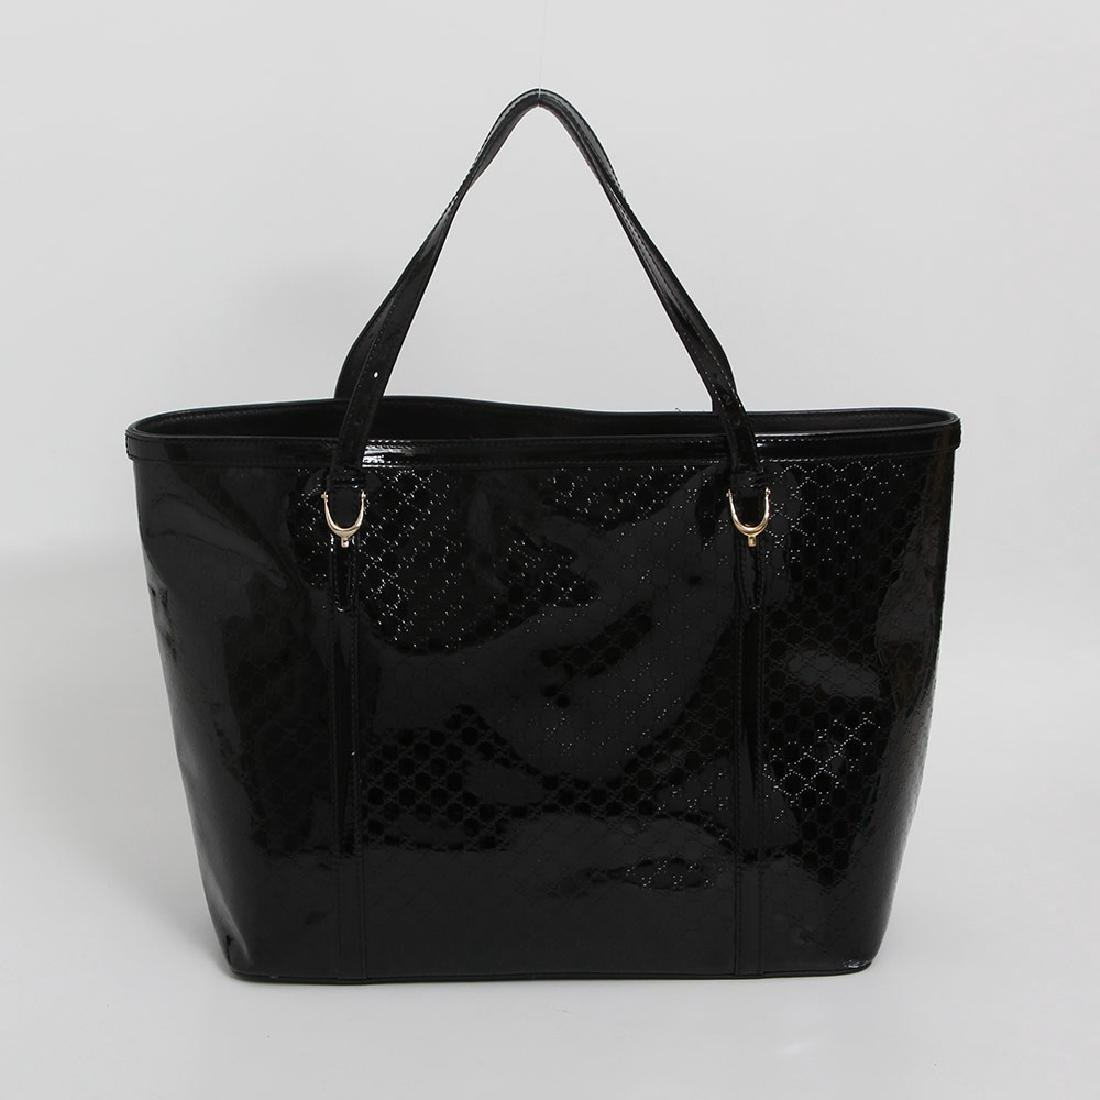 GUCCI edler Shopper. NP. ca.: 900,-€. TOP ERHALT!!